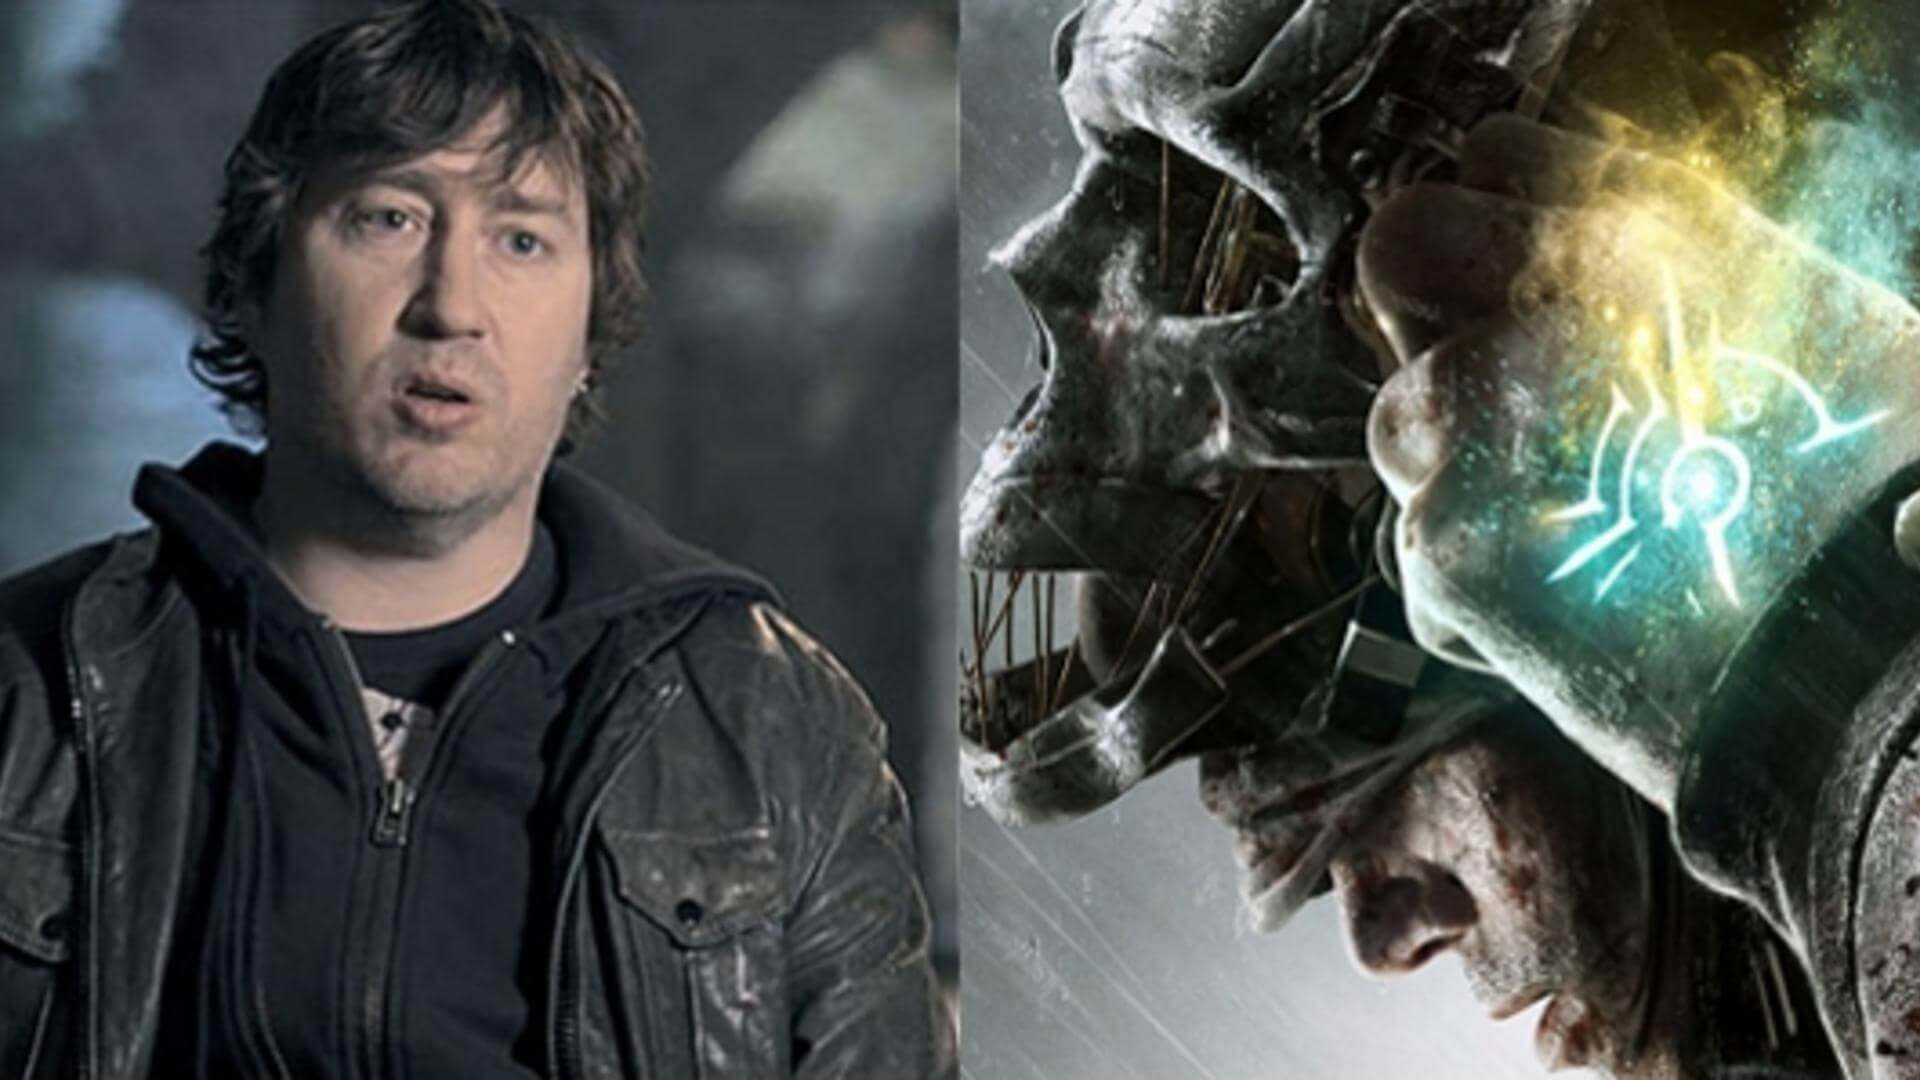 Dishonored Co-Creator is Developing a New Title at Arkane